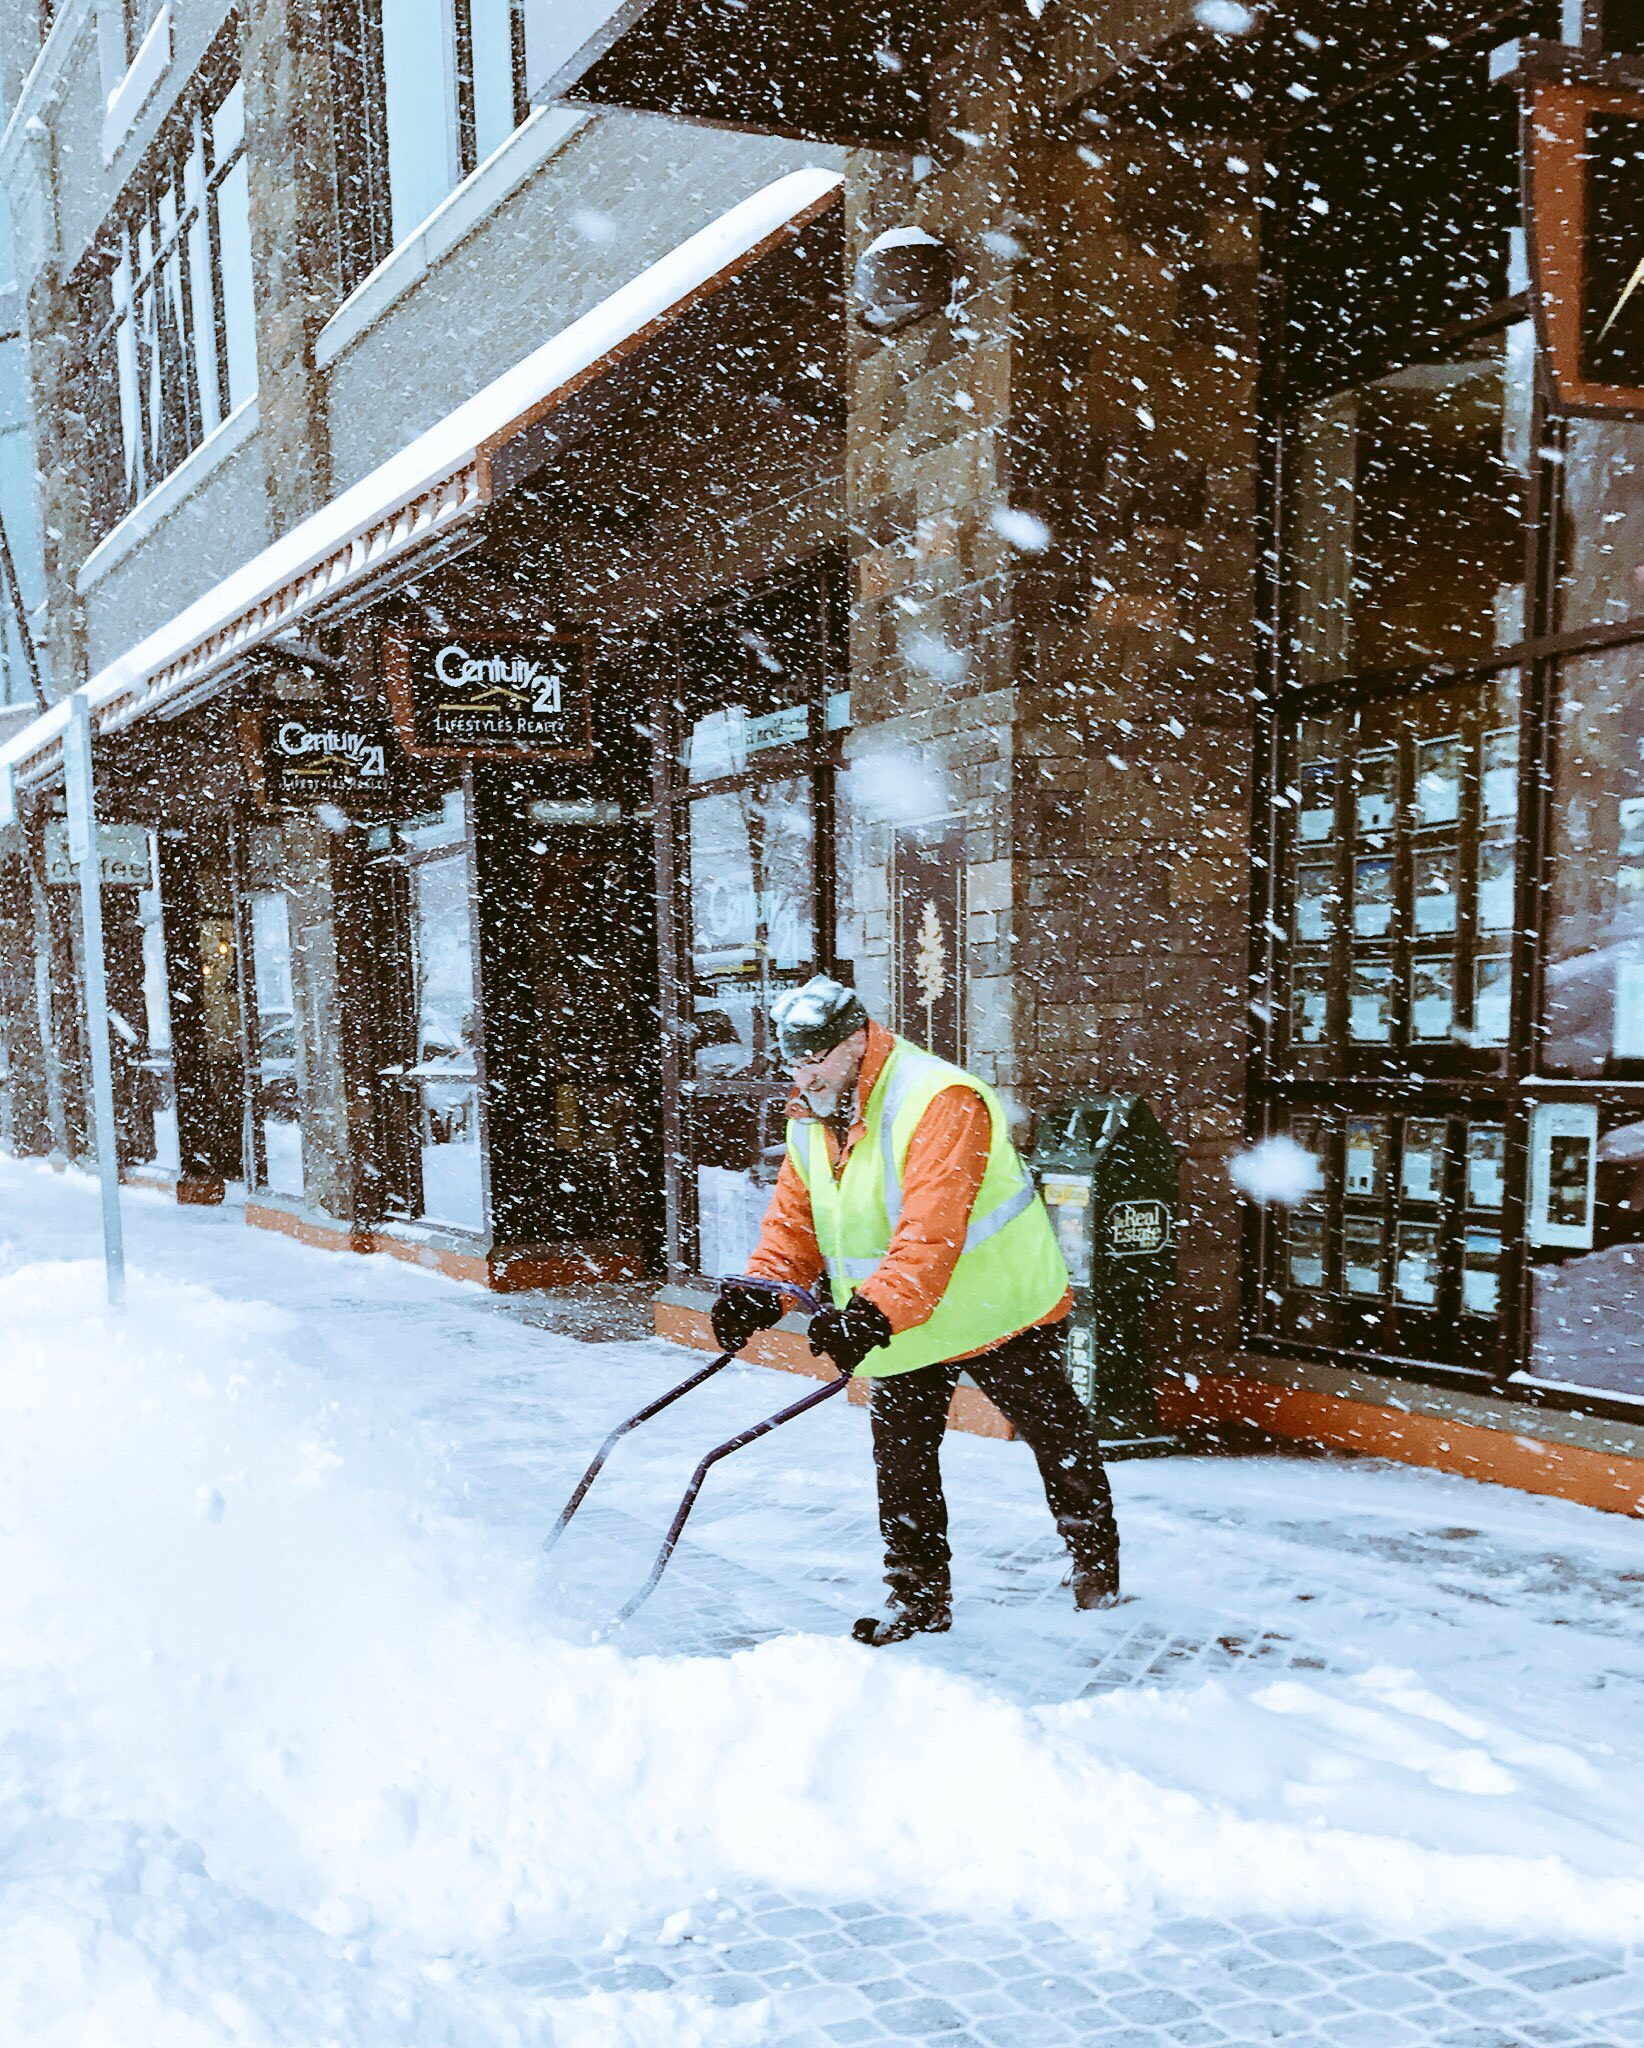 DBBA Executive Director, Rod Porsche, shovels snow in January 2017